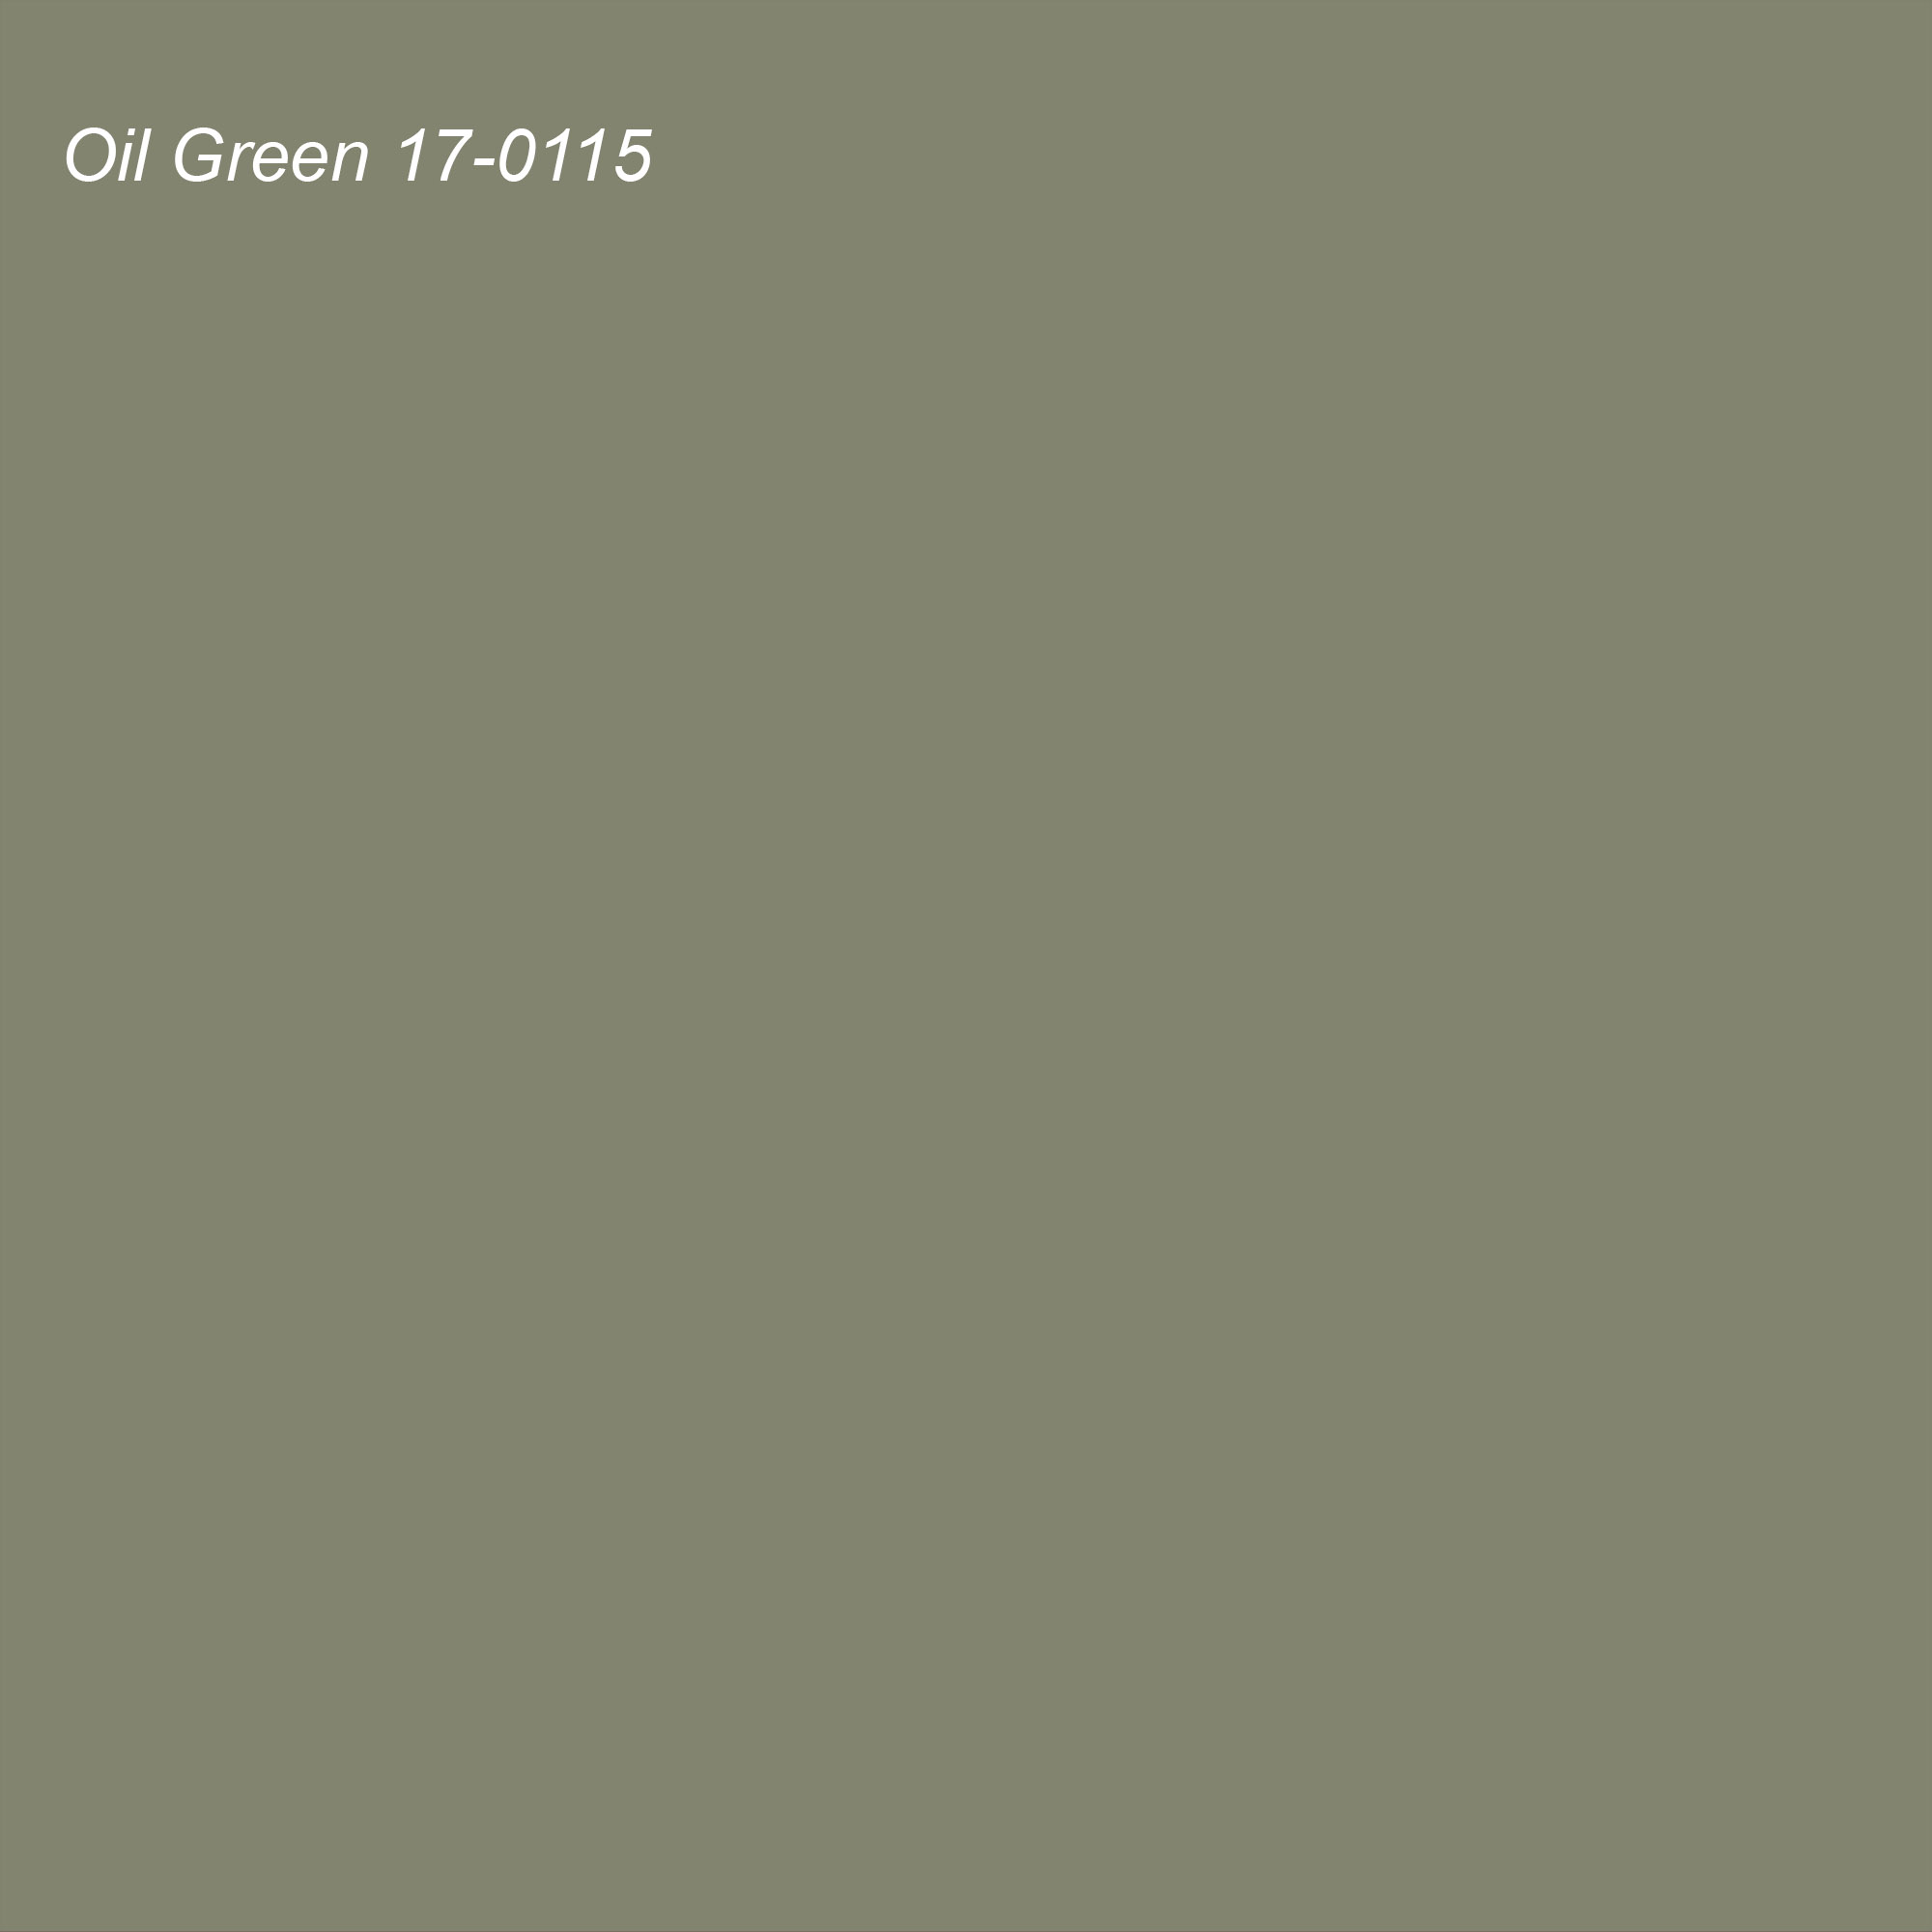 Pantone 2021 Color of the Year Suggested Accent Shade Oil Green 17-0115